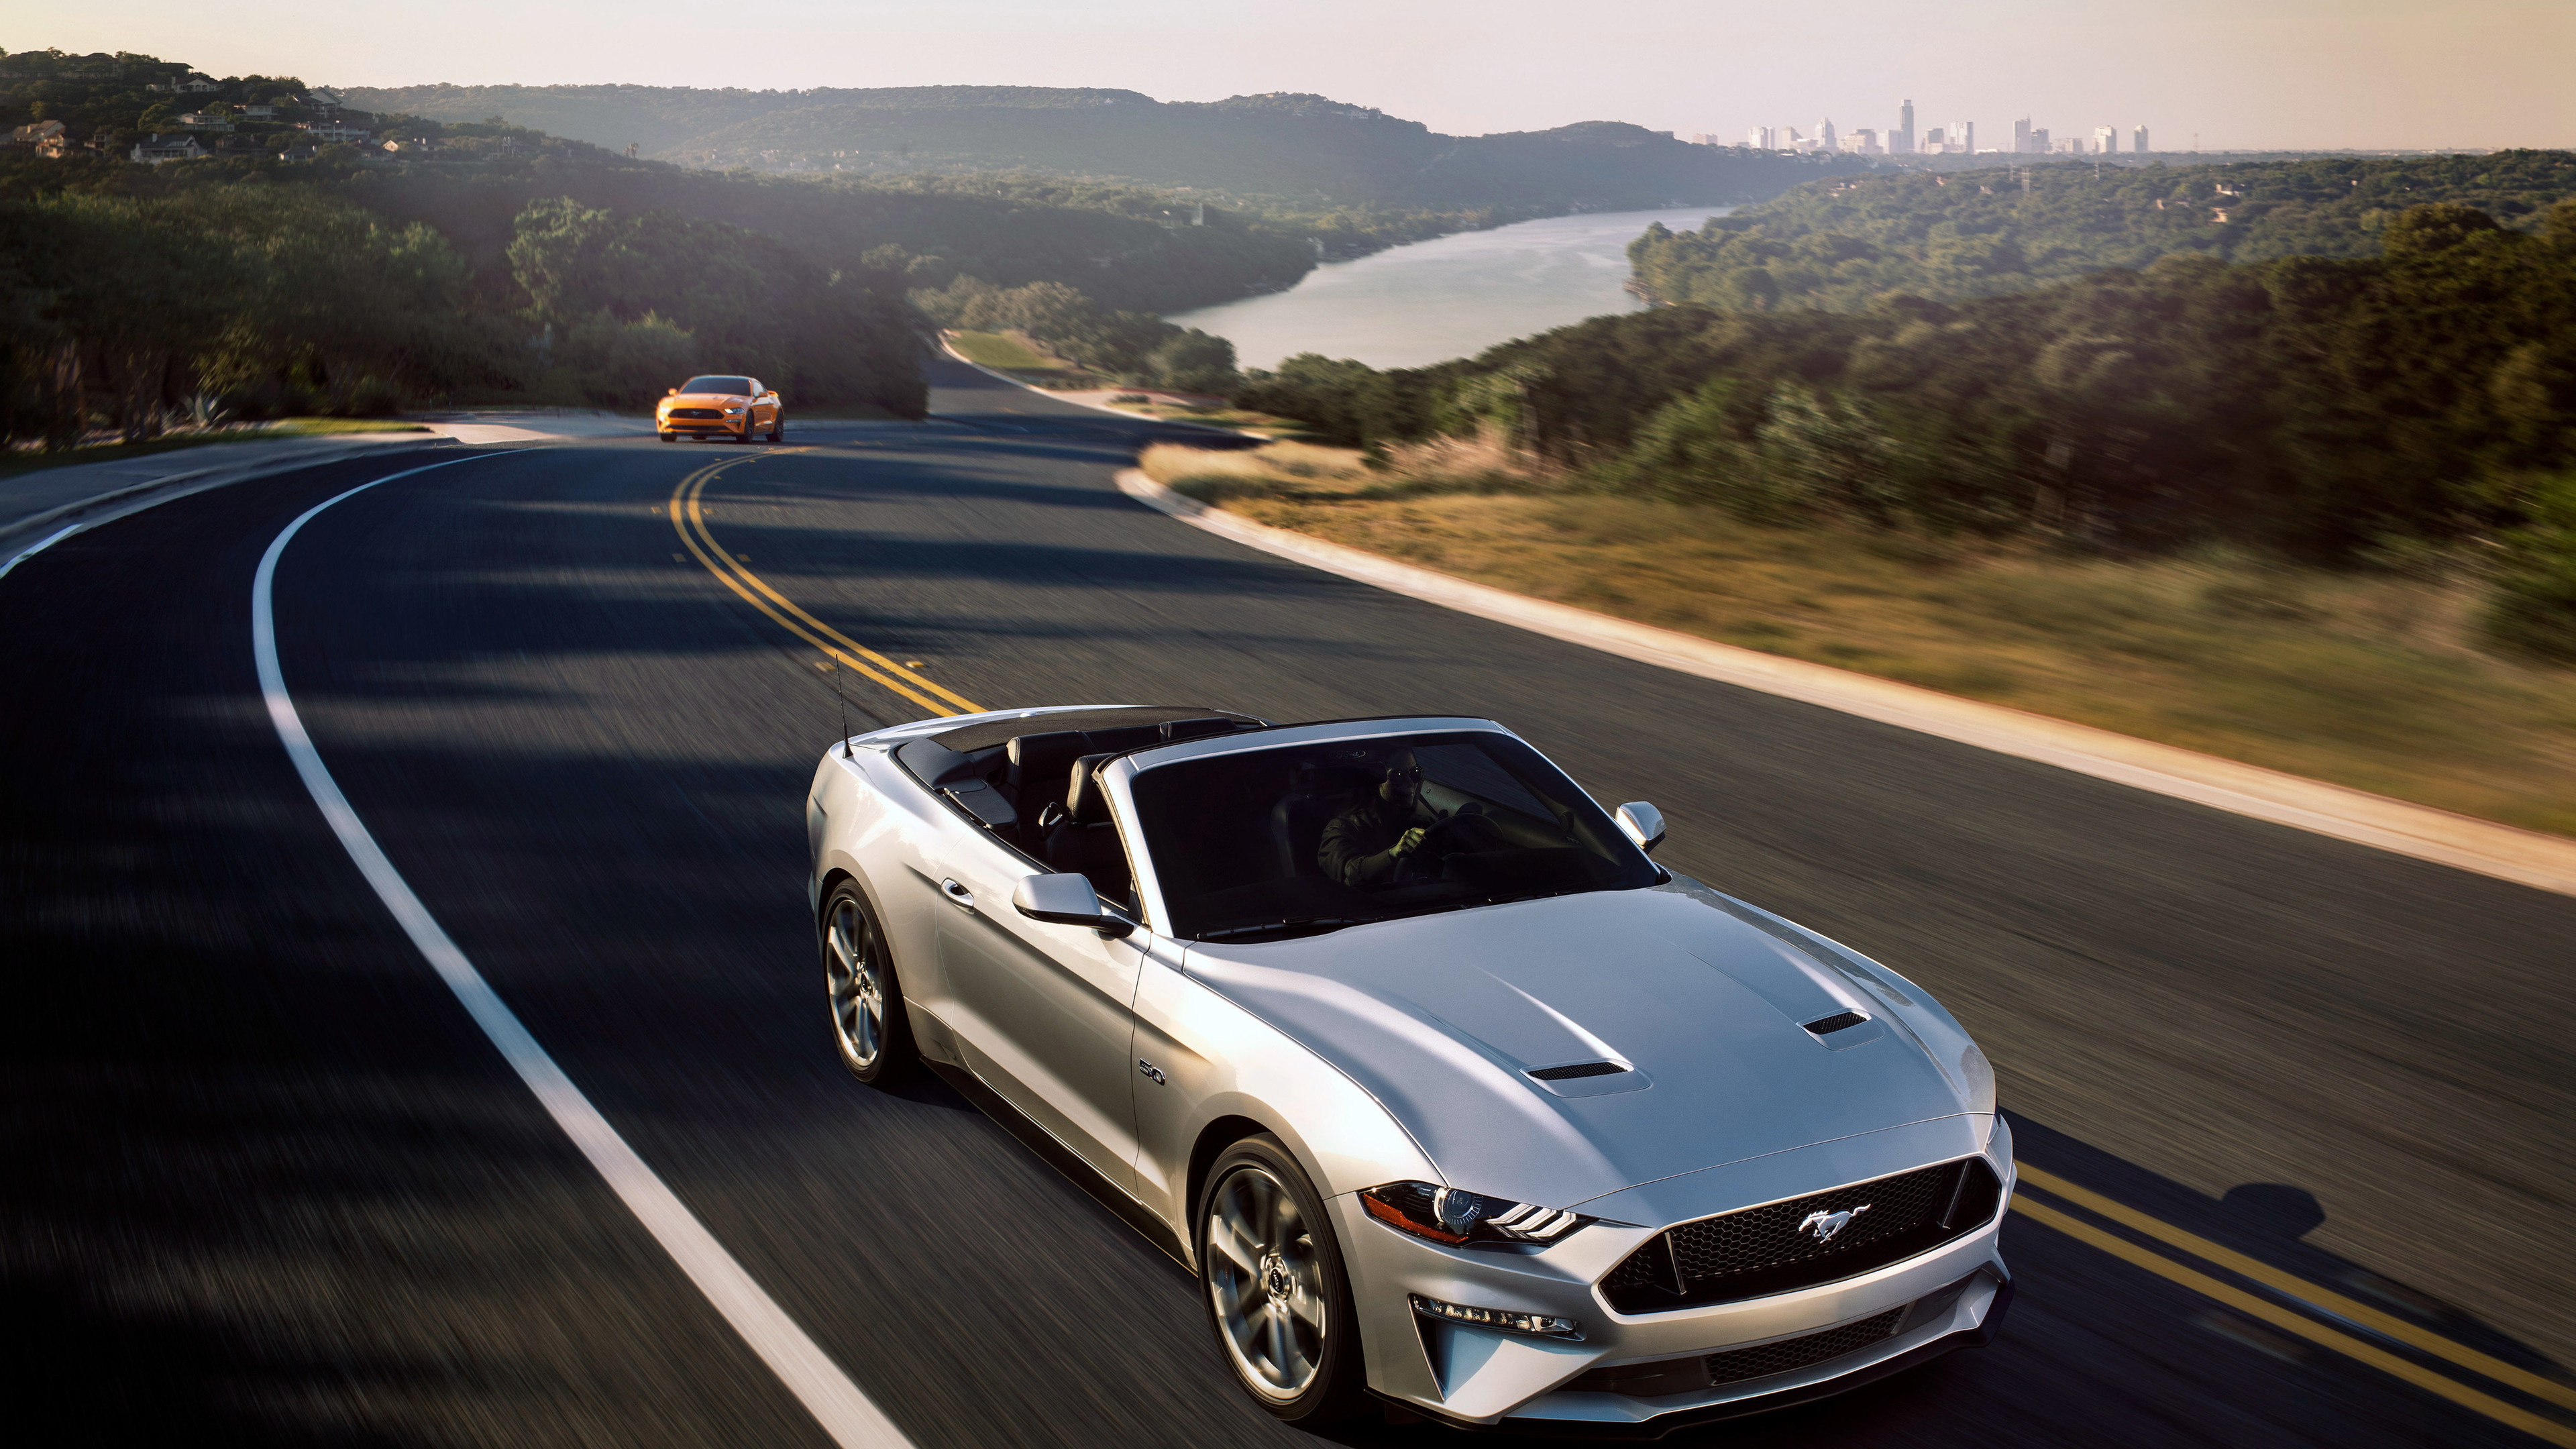 ford mustang gt convertible 2018 4k 1539107850 - Ford Mustang GT Convertible 2018 4k - mustang wallpapers, hd-wallpapers, ford mustang wallpapers, cars wallpapers, 4k-wallpapers, 2018 cars wallpapers